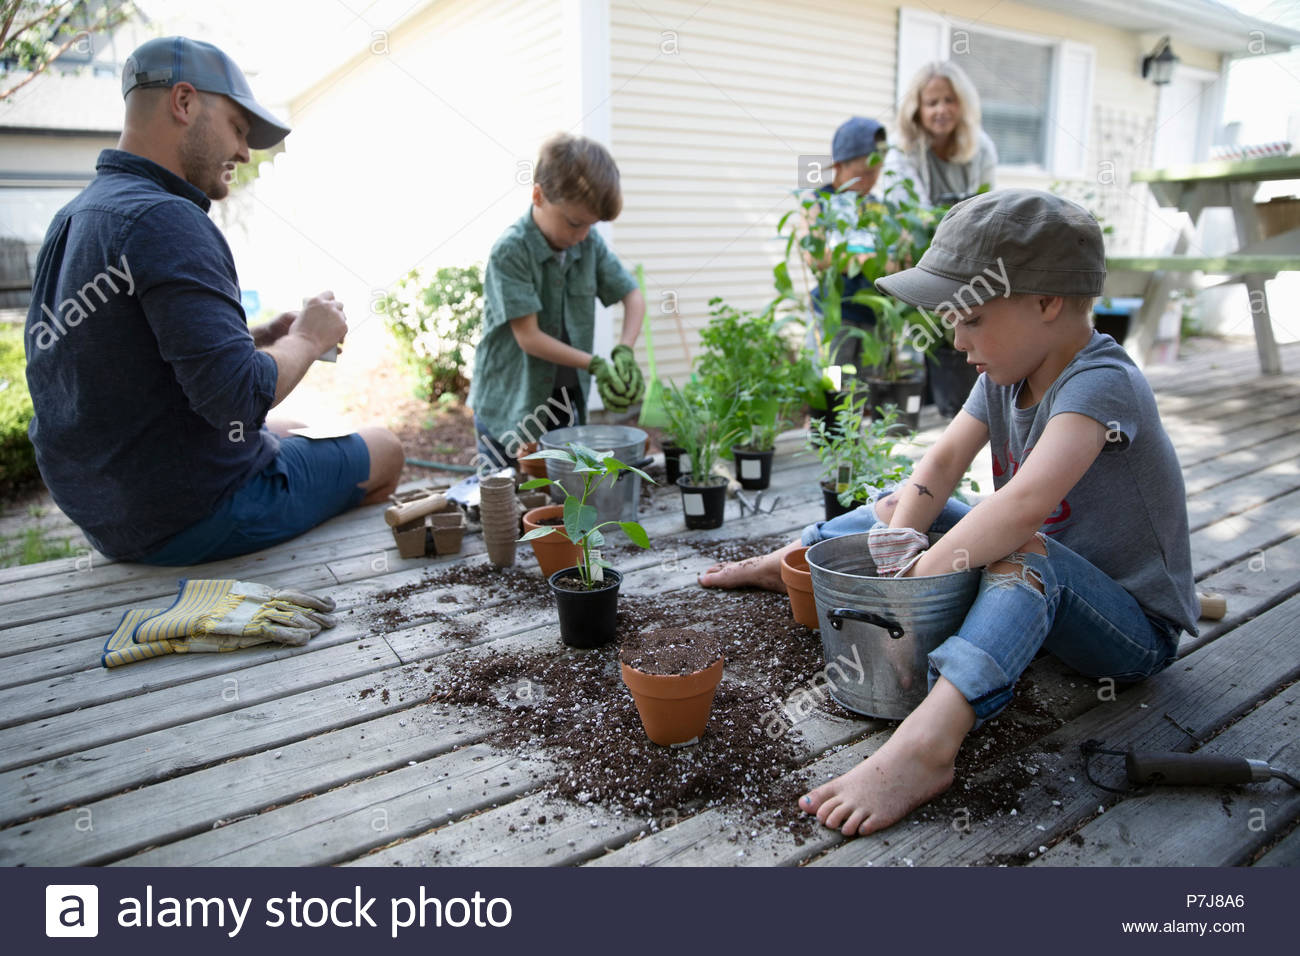 Family potting plants on deck - Stock Image